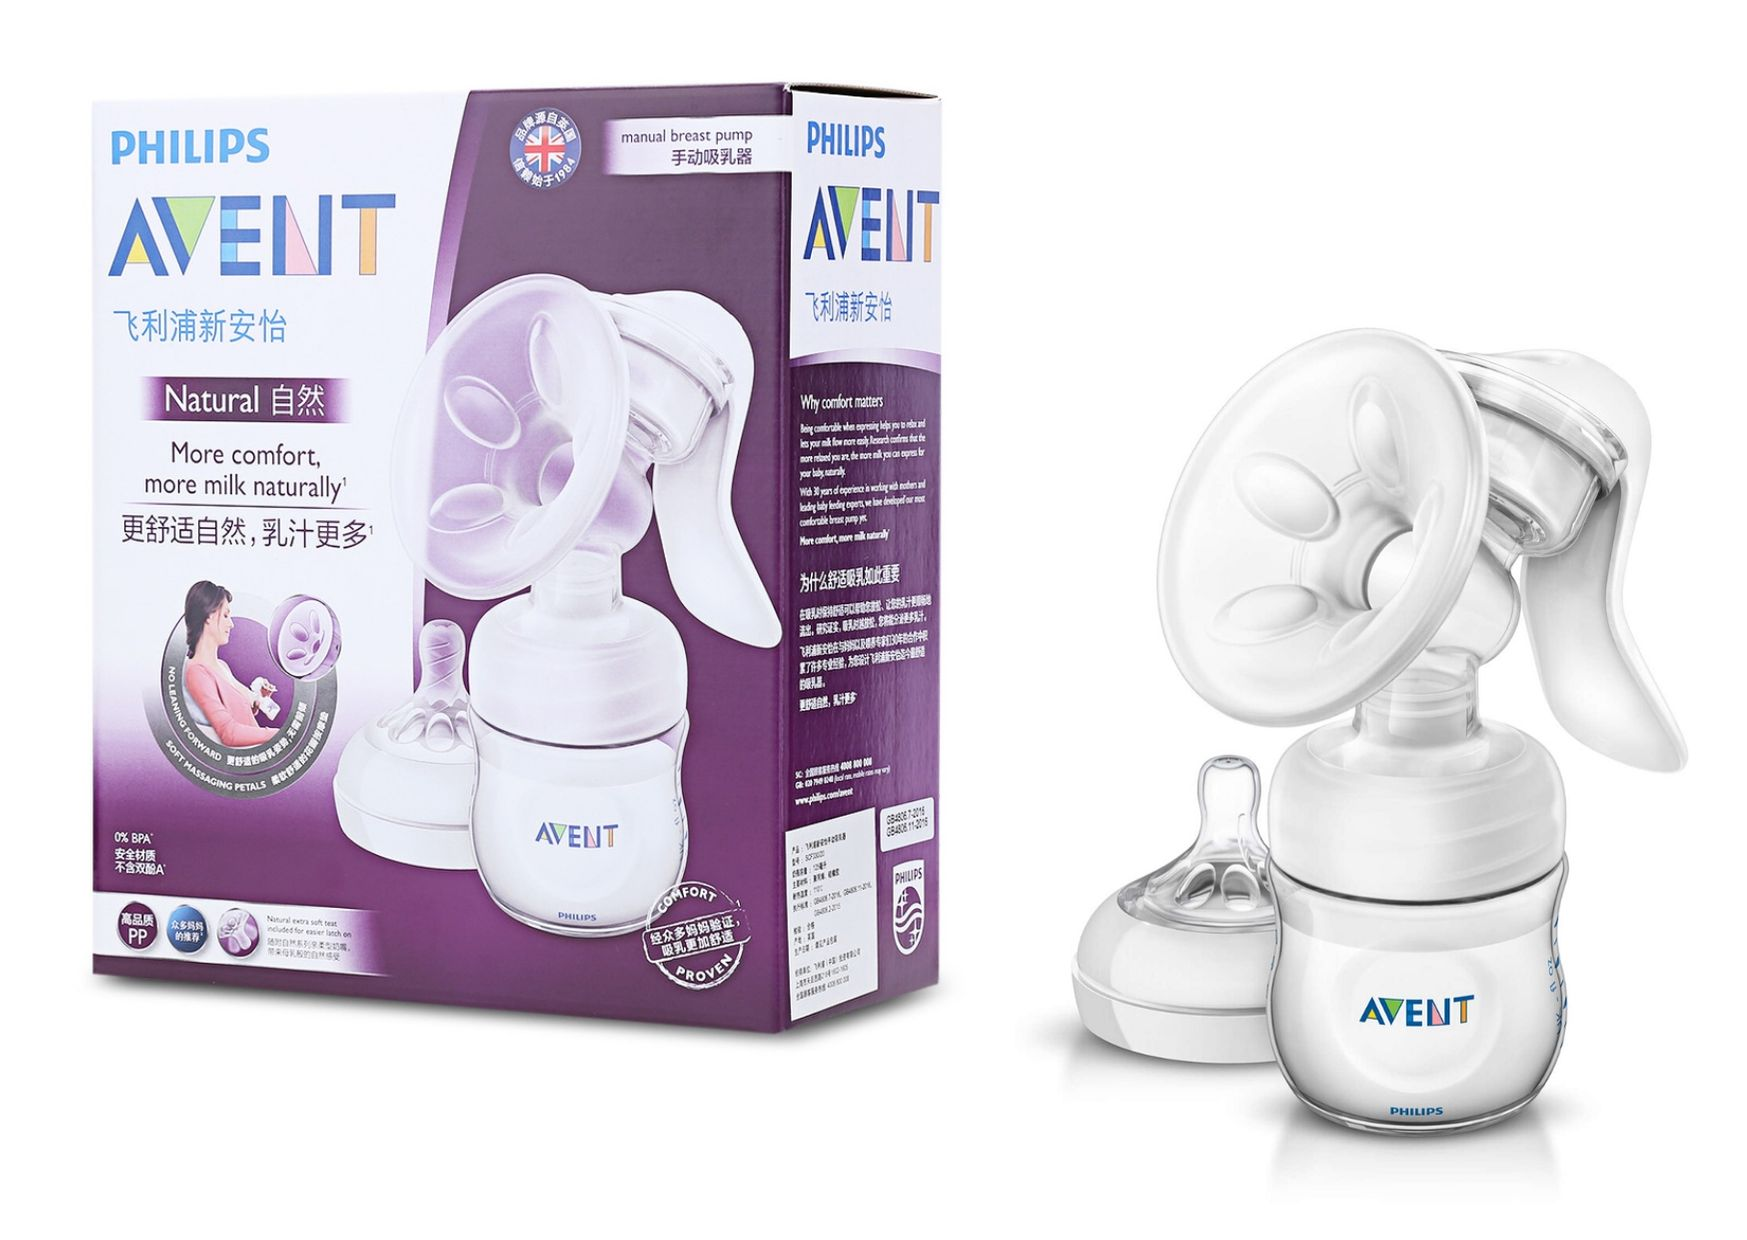 Philips Avent Pompa ASI Manual